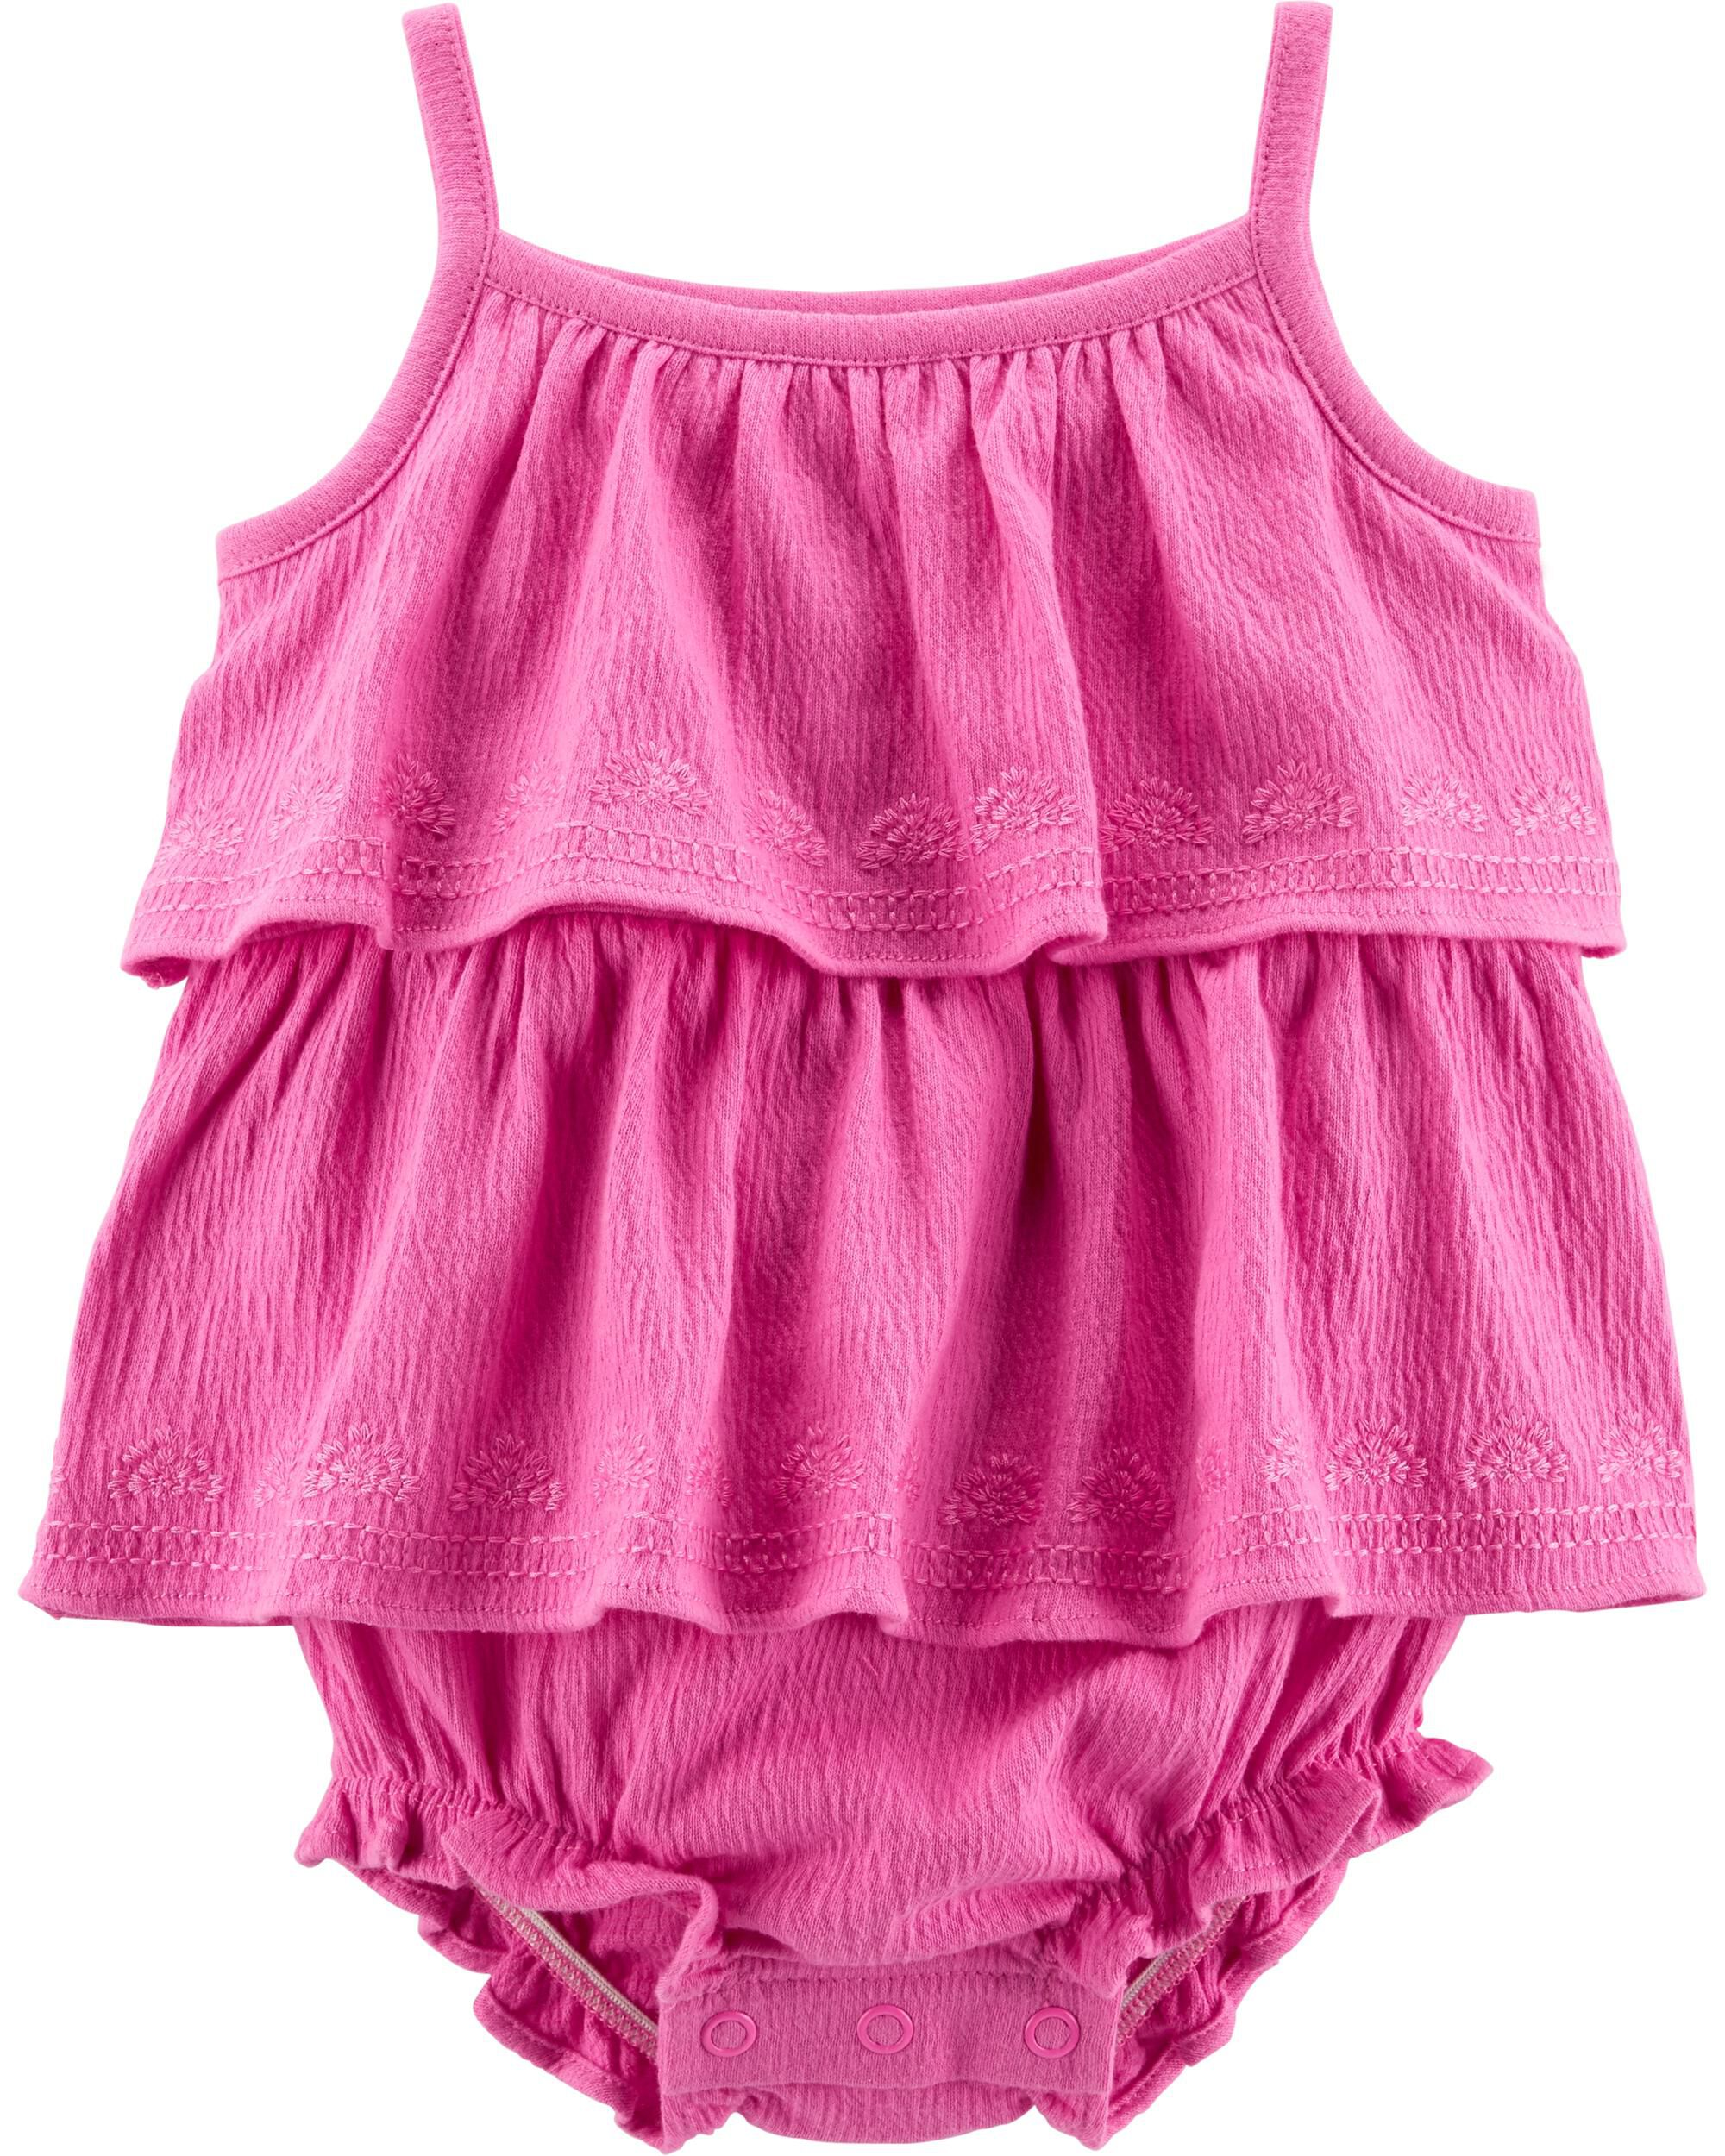 Sweet Love Heart Romper Size 12 Months Clothing, Shoes & Accessories Girls' Clothing (newborn-5t)